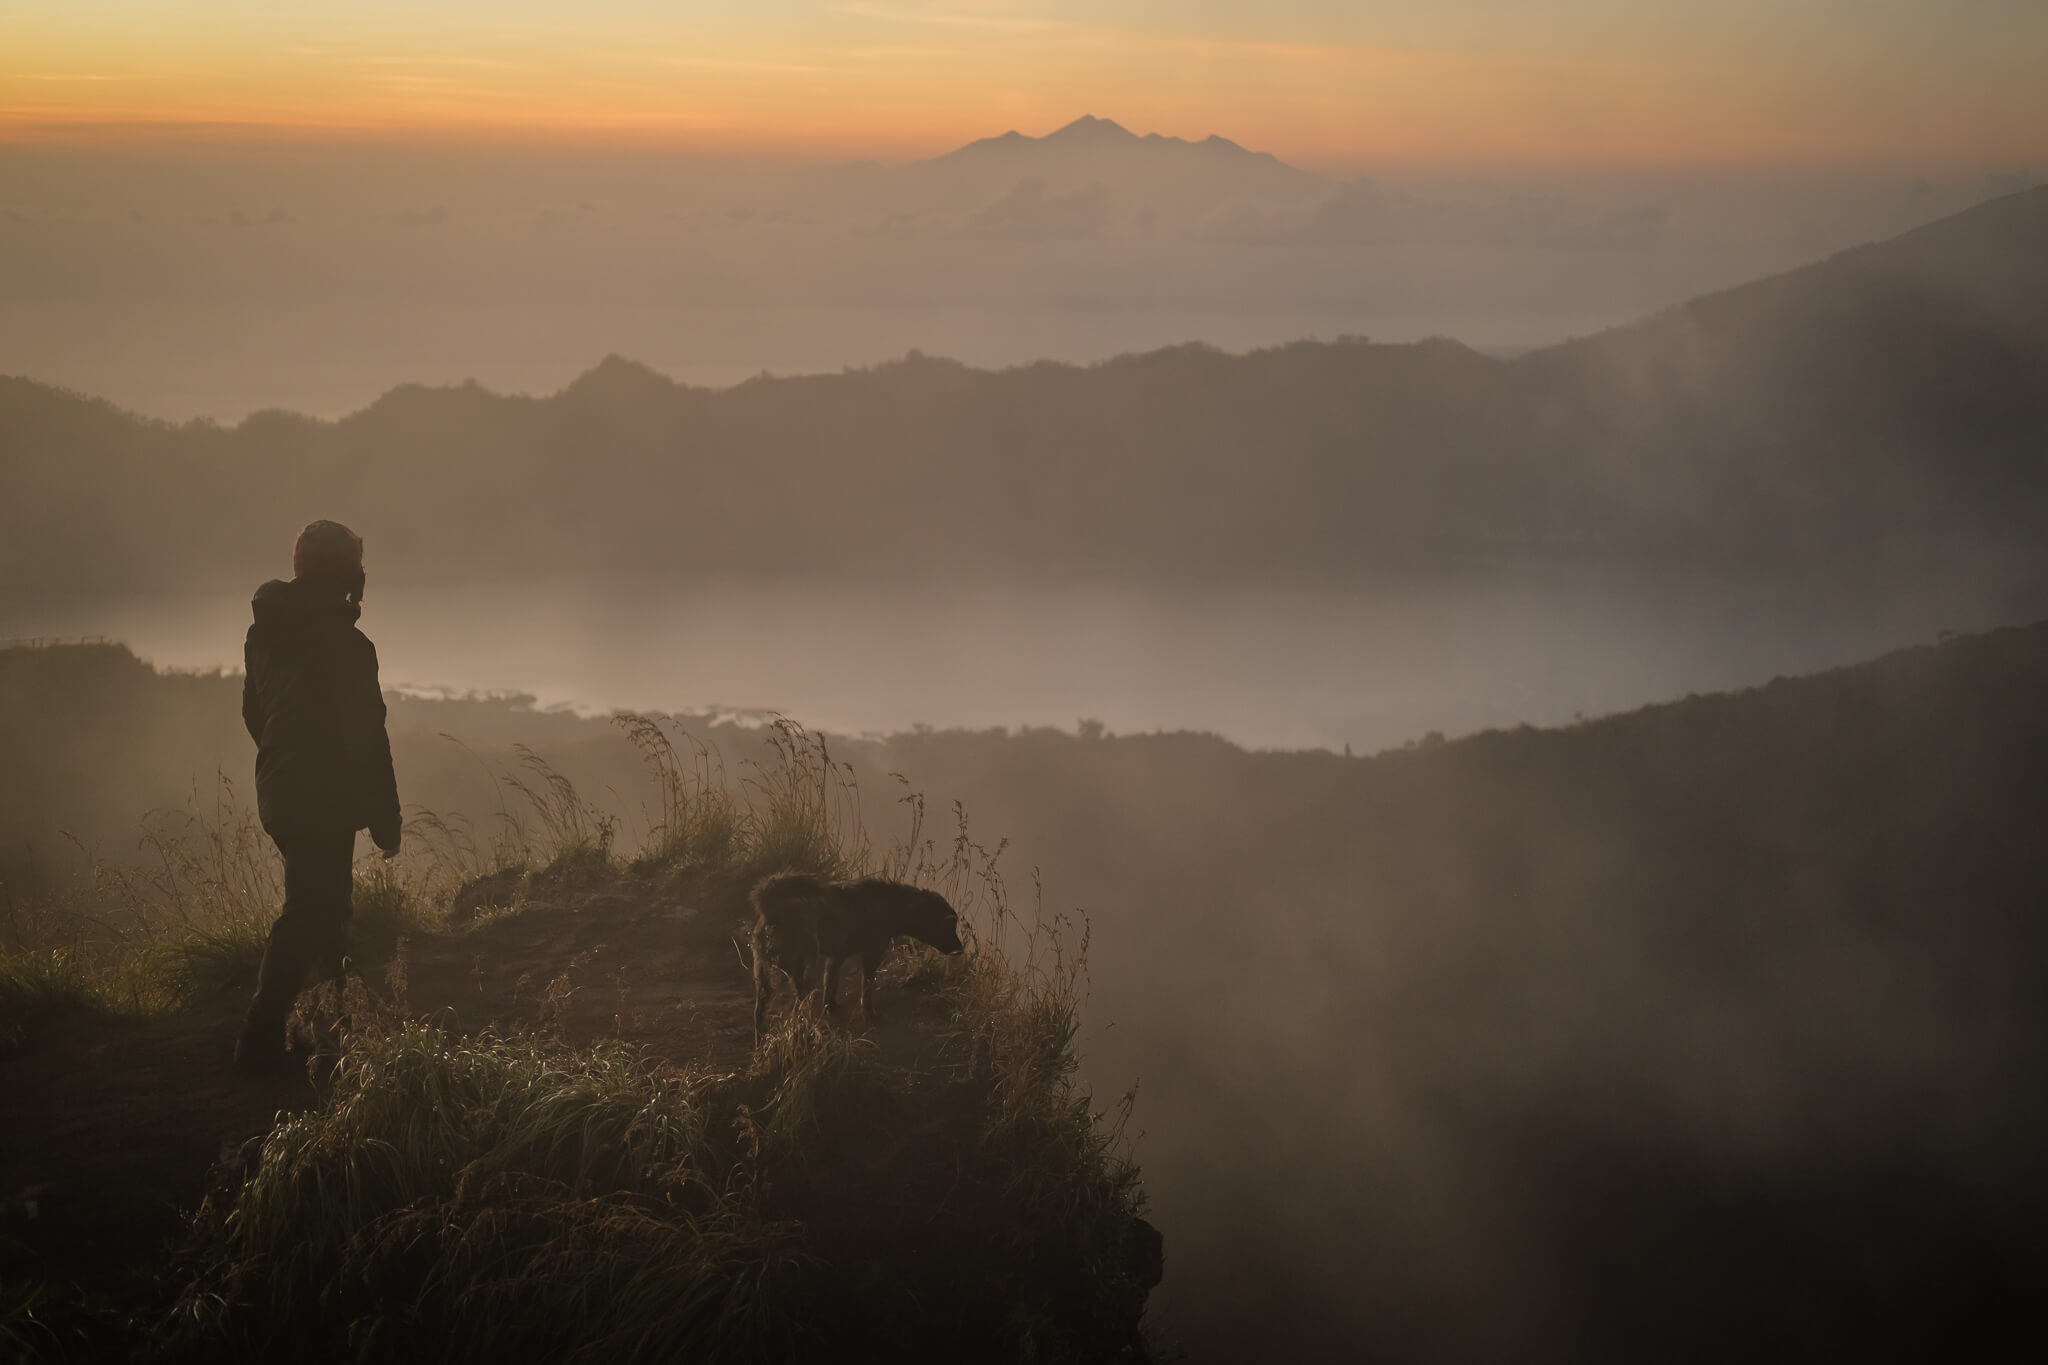 Will Hatton at the summit of Mount Batur contemplating his upcoming travels in 2021